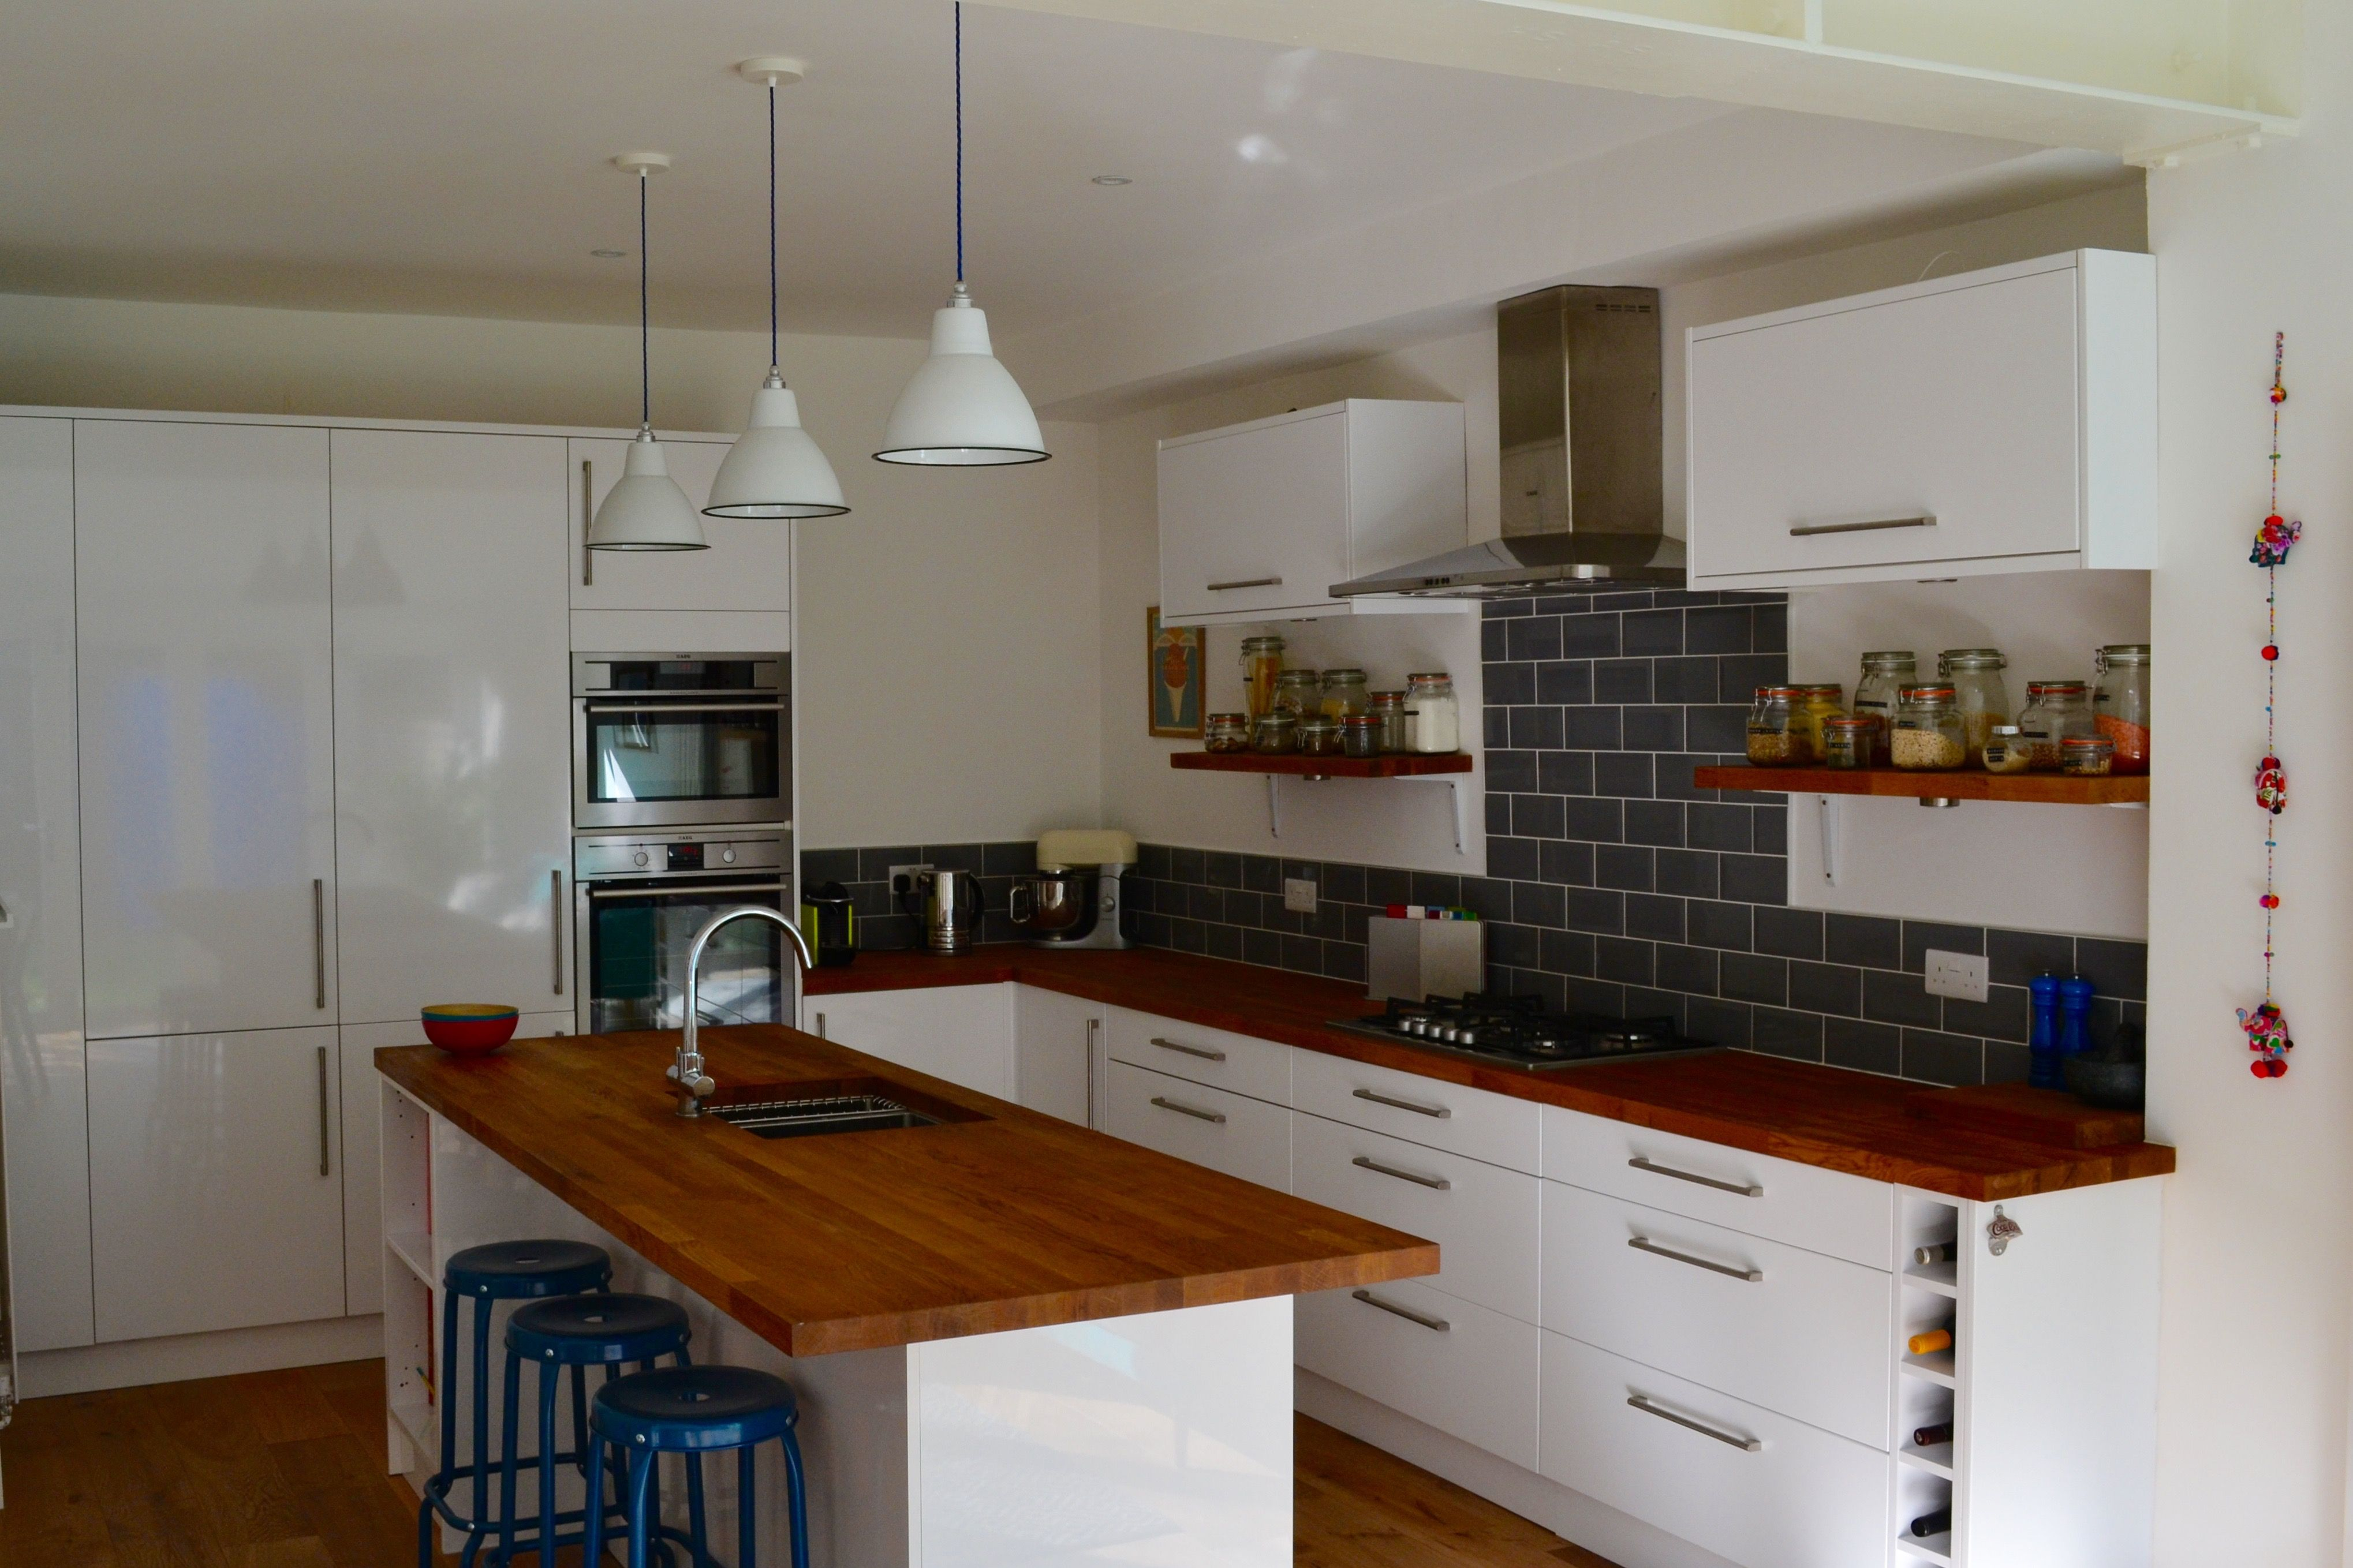 Benchmarx white gloss kitchen with oak worktops and grey